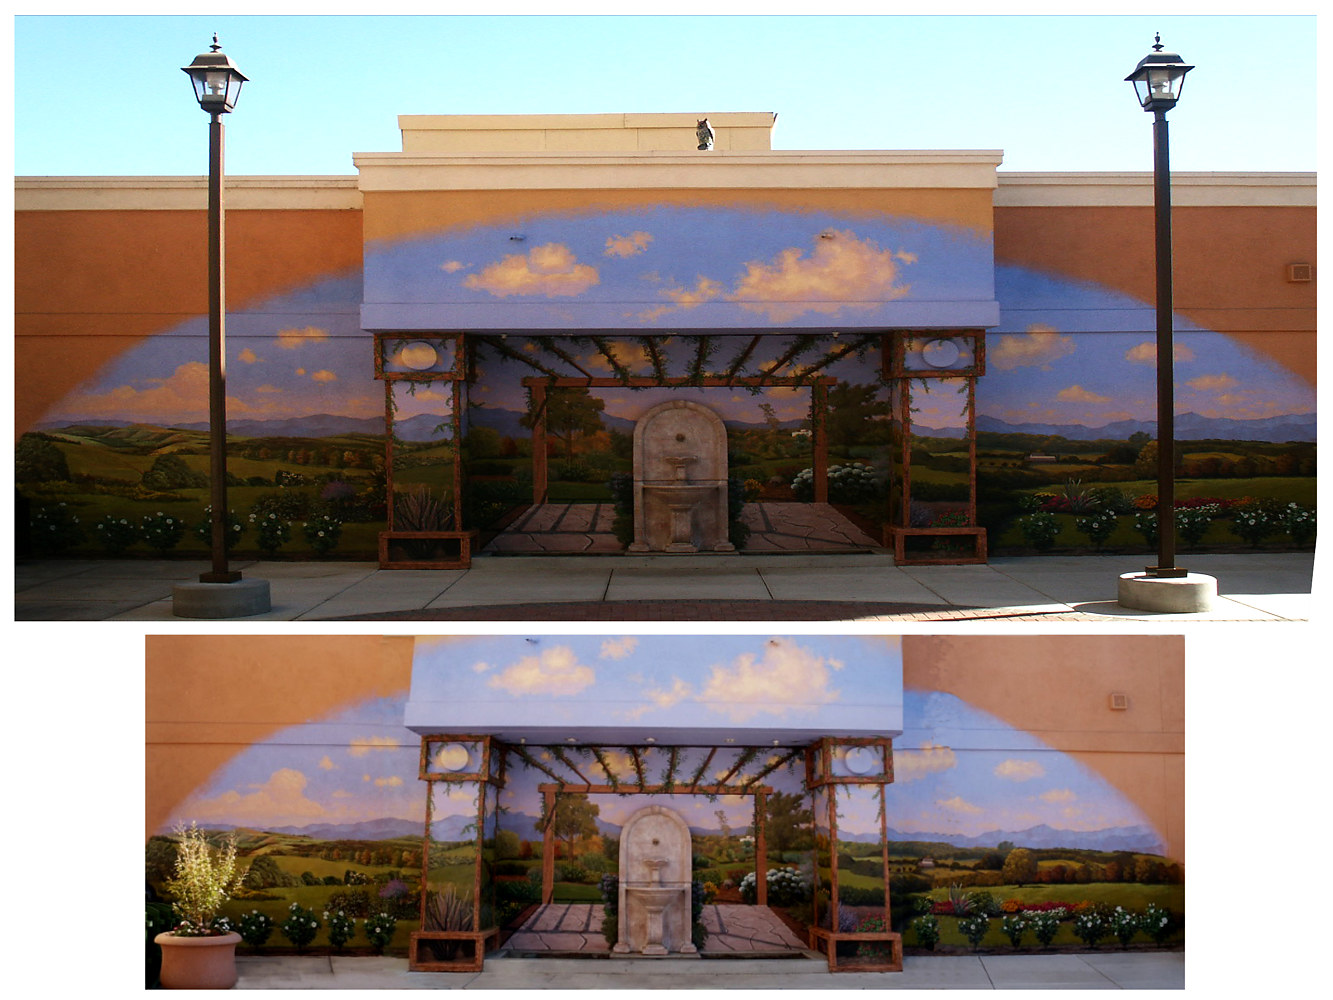 Elsinore Outlet Mall Mural Project 3 by Robert Milling